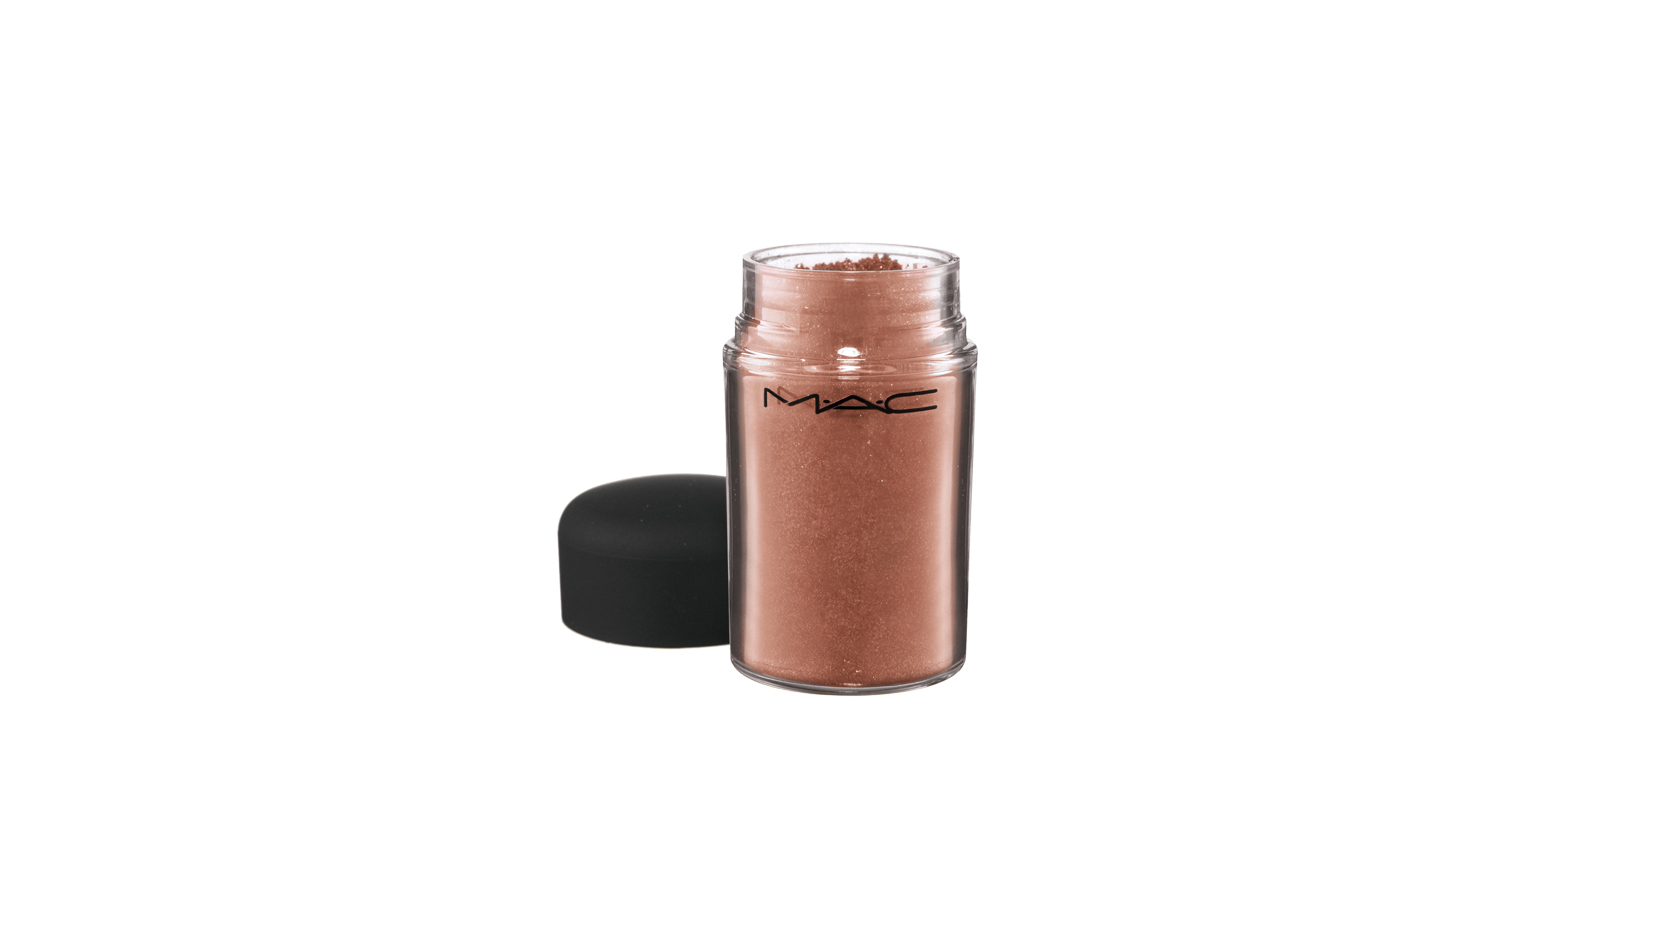 M∙A∙C Cosmetics Pigment in Tan